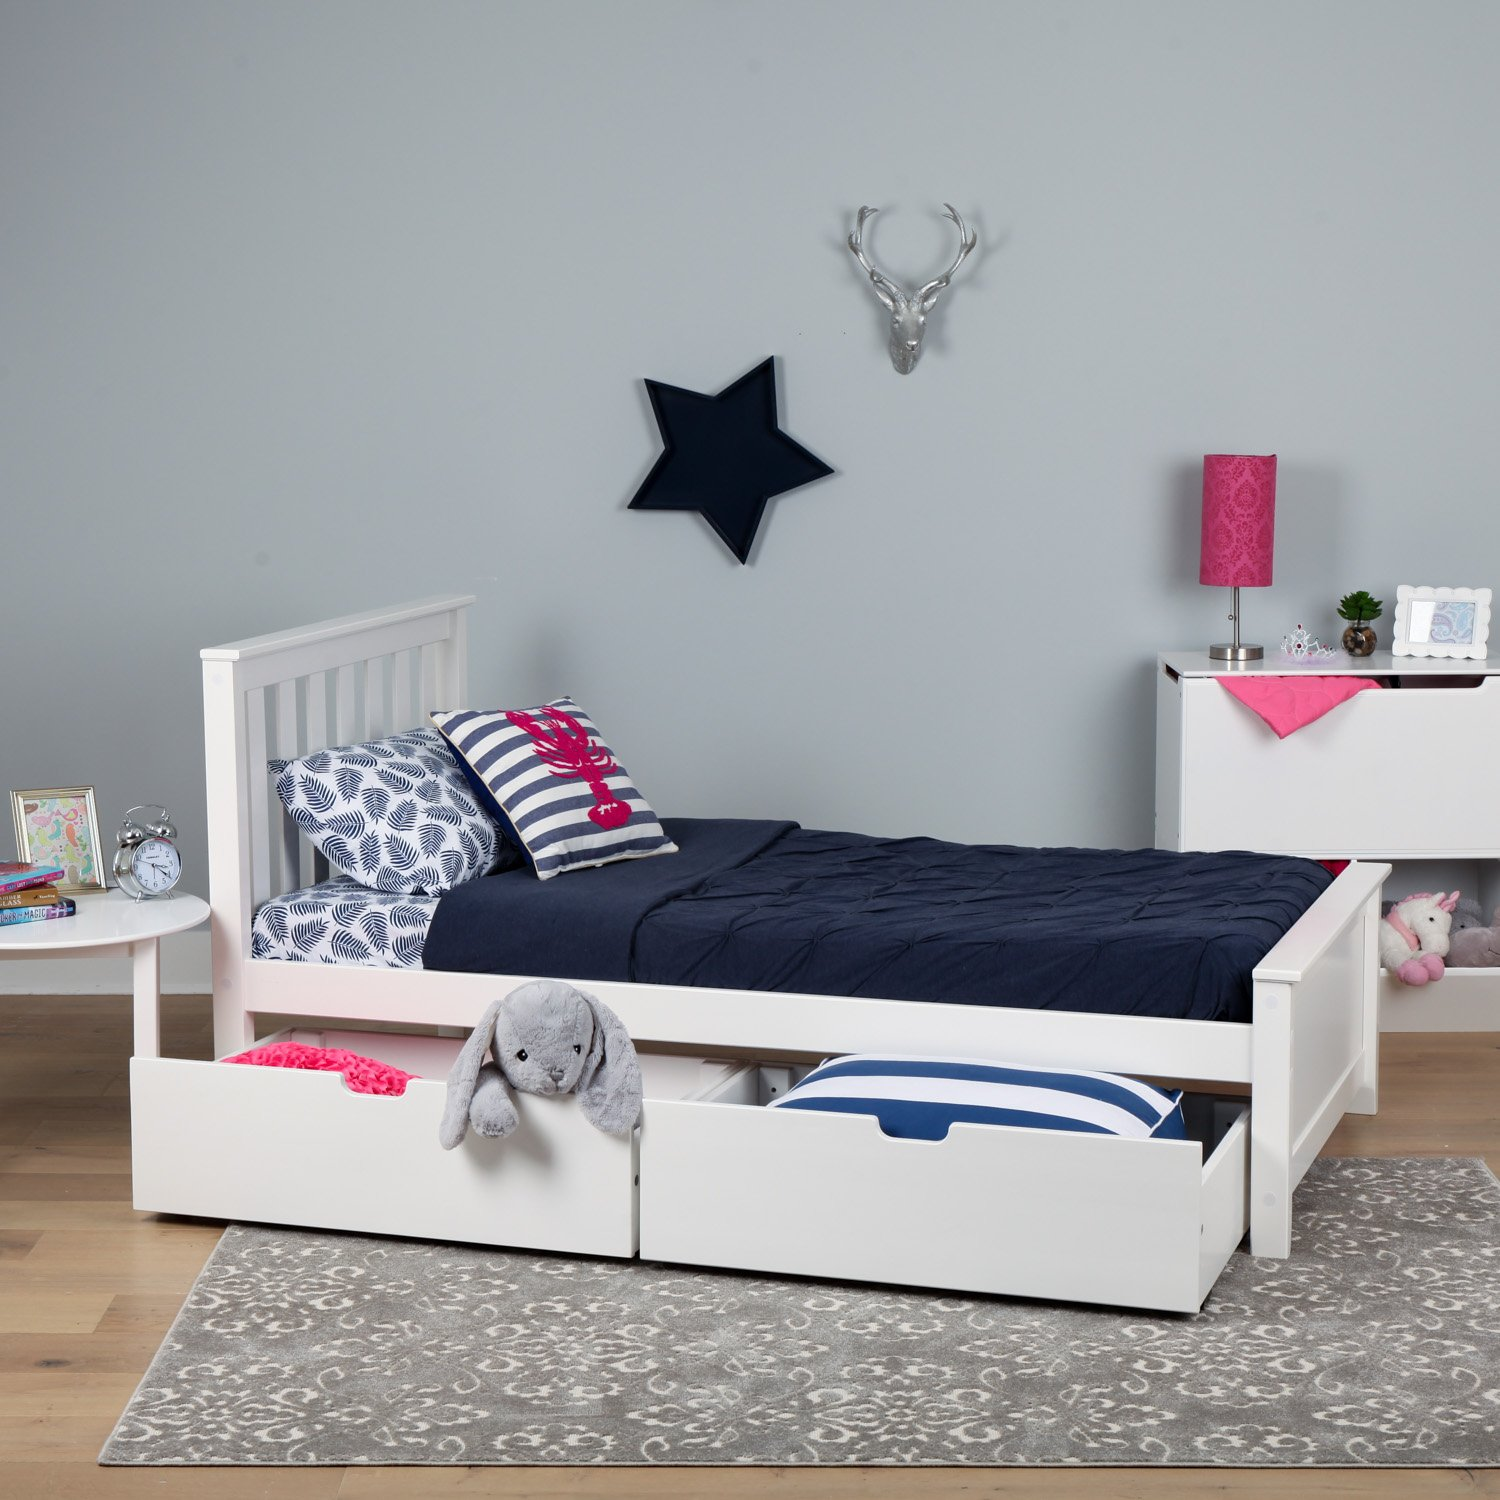 Amazoncom Max & Lily Solid Wood Twin Size Bed With Under